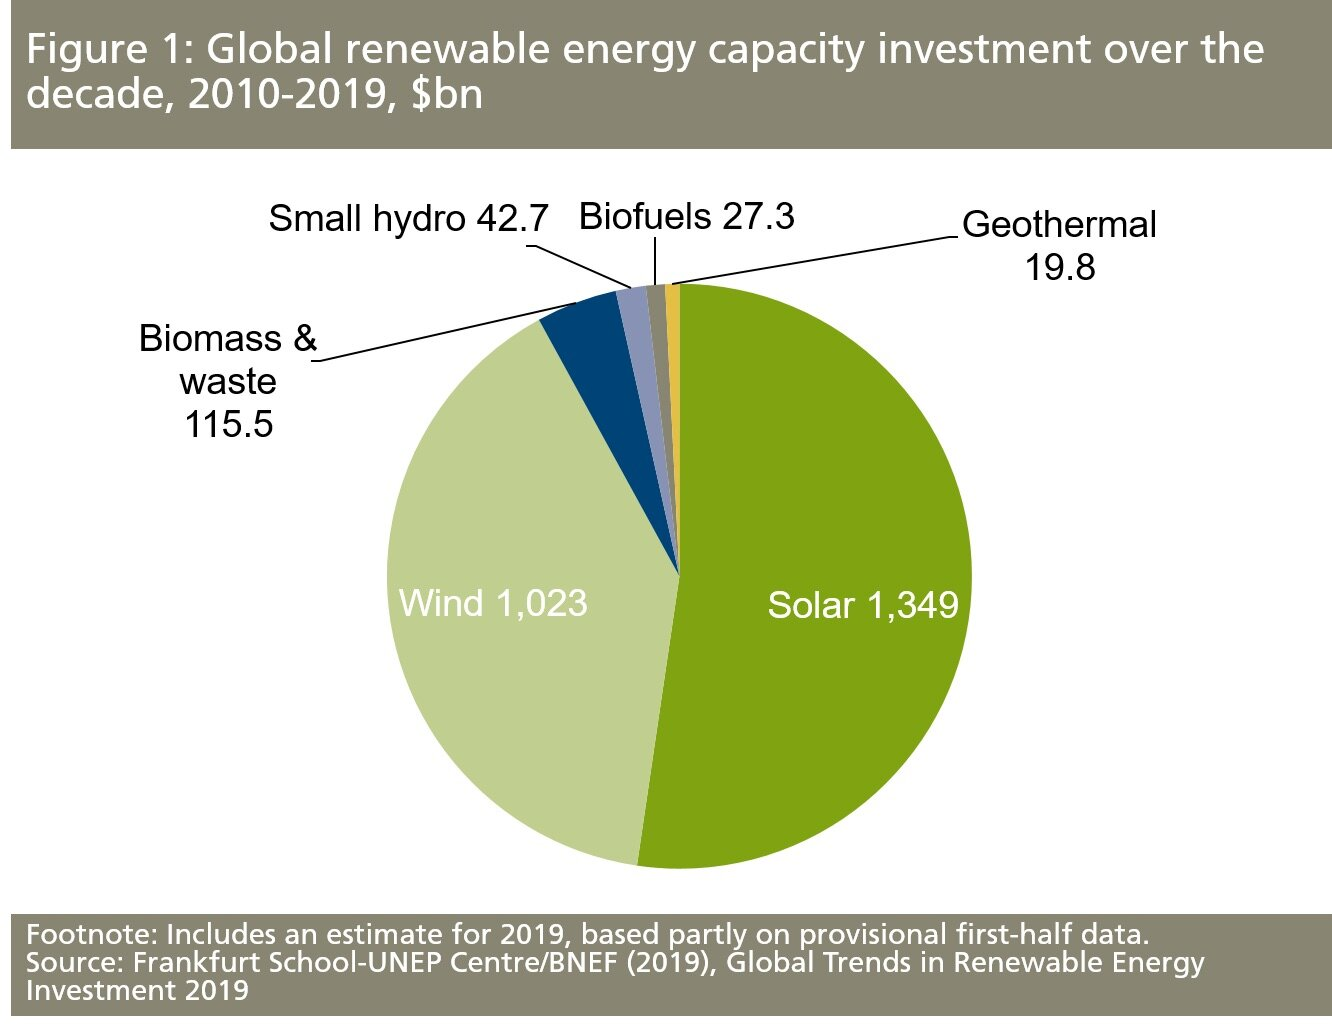 A decade of renewable energy investment, led by solar, tops